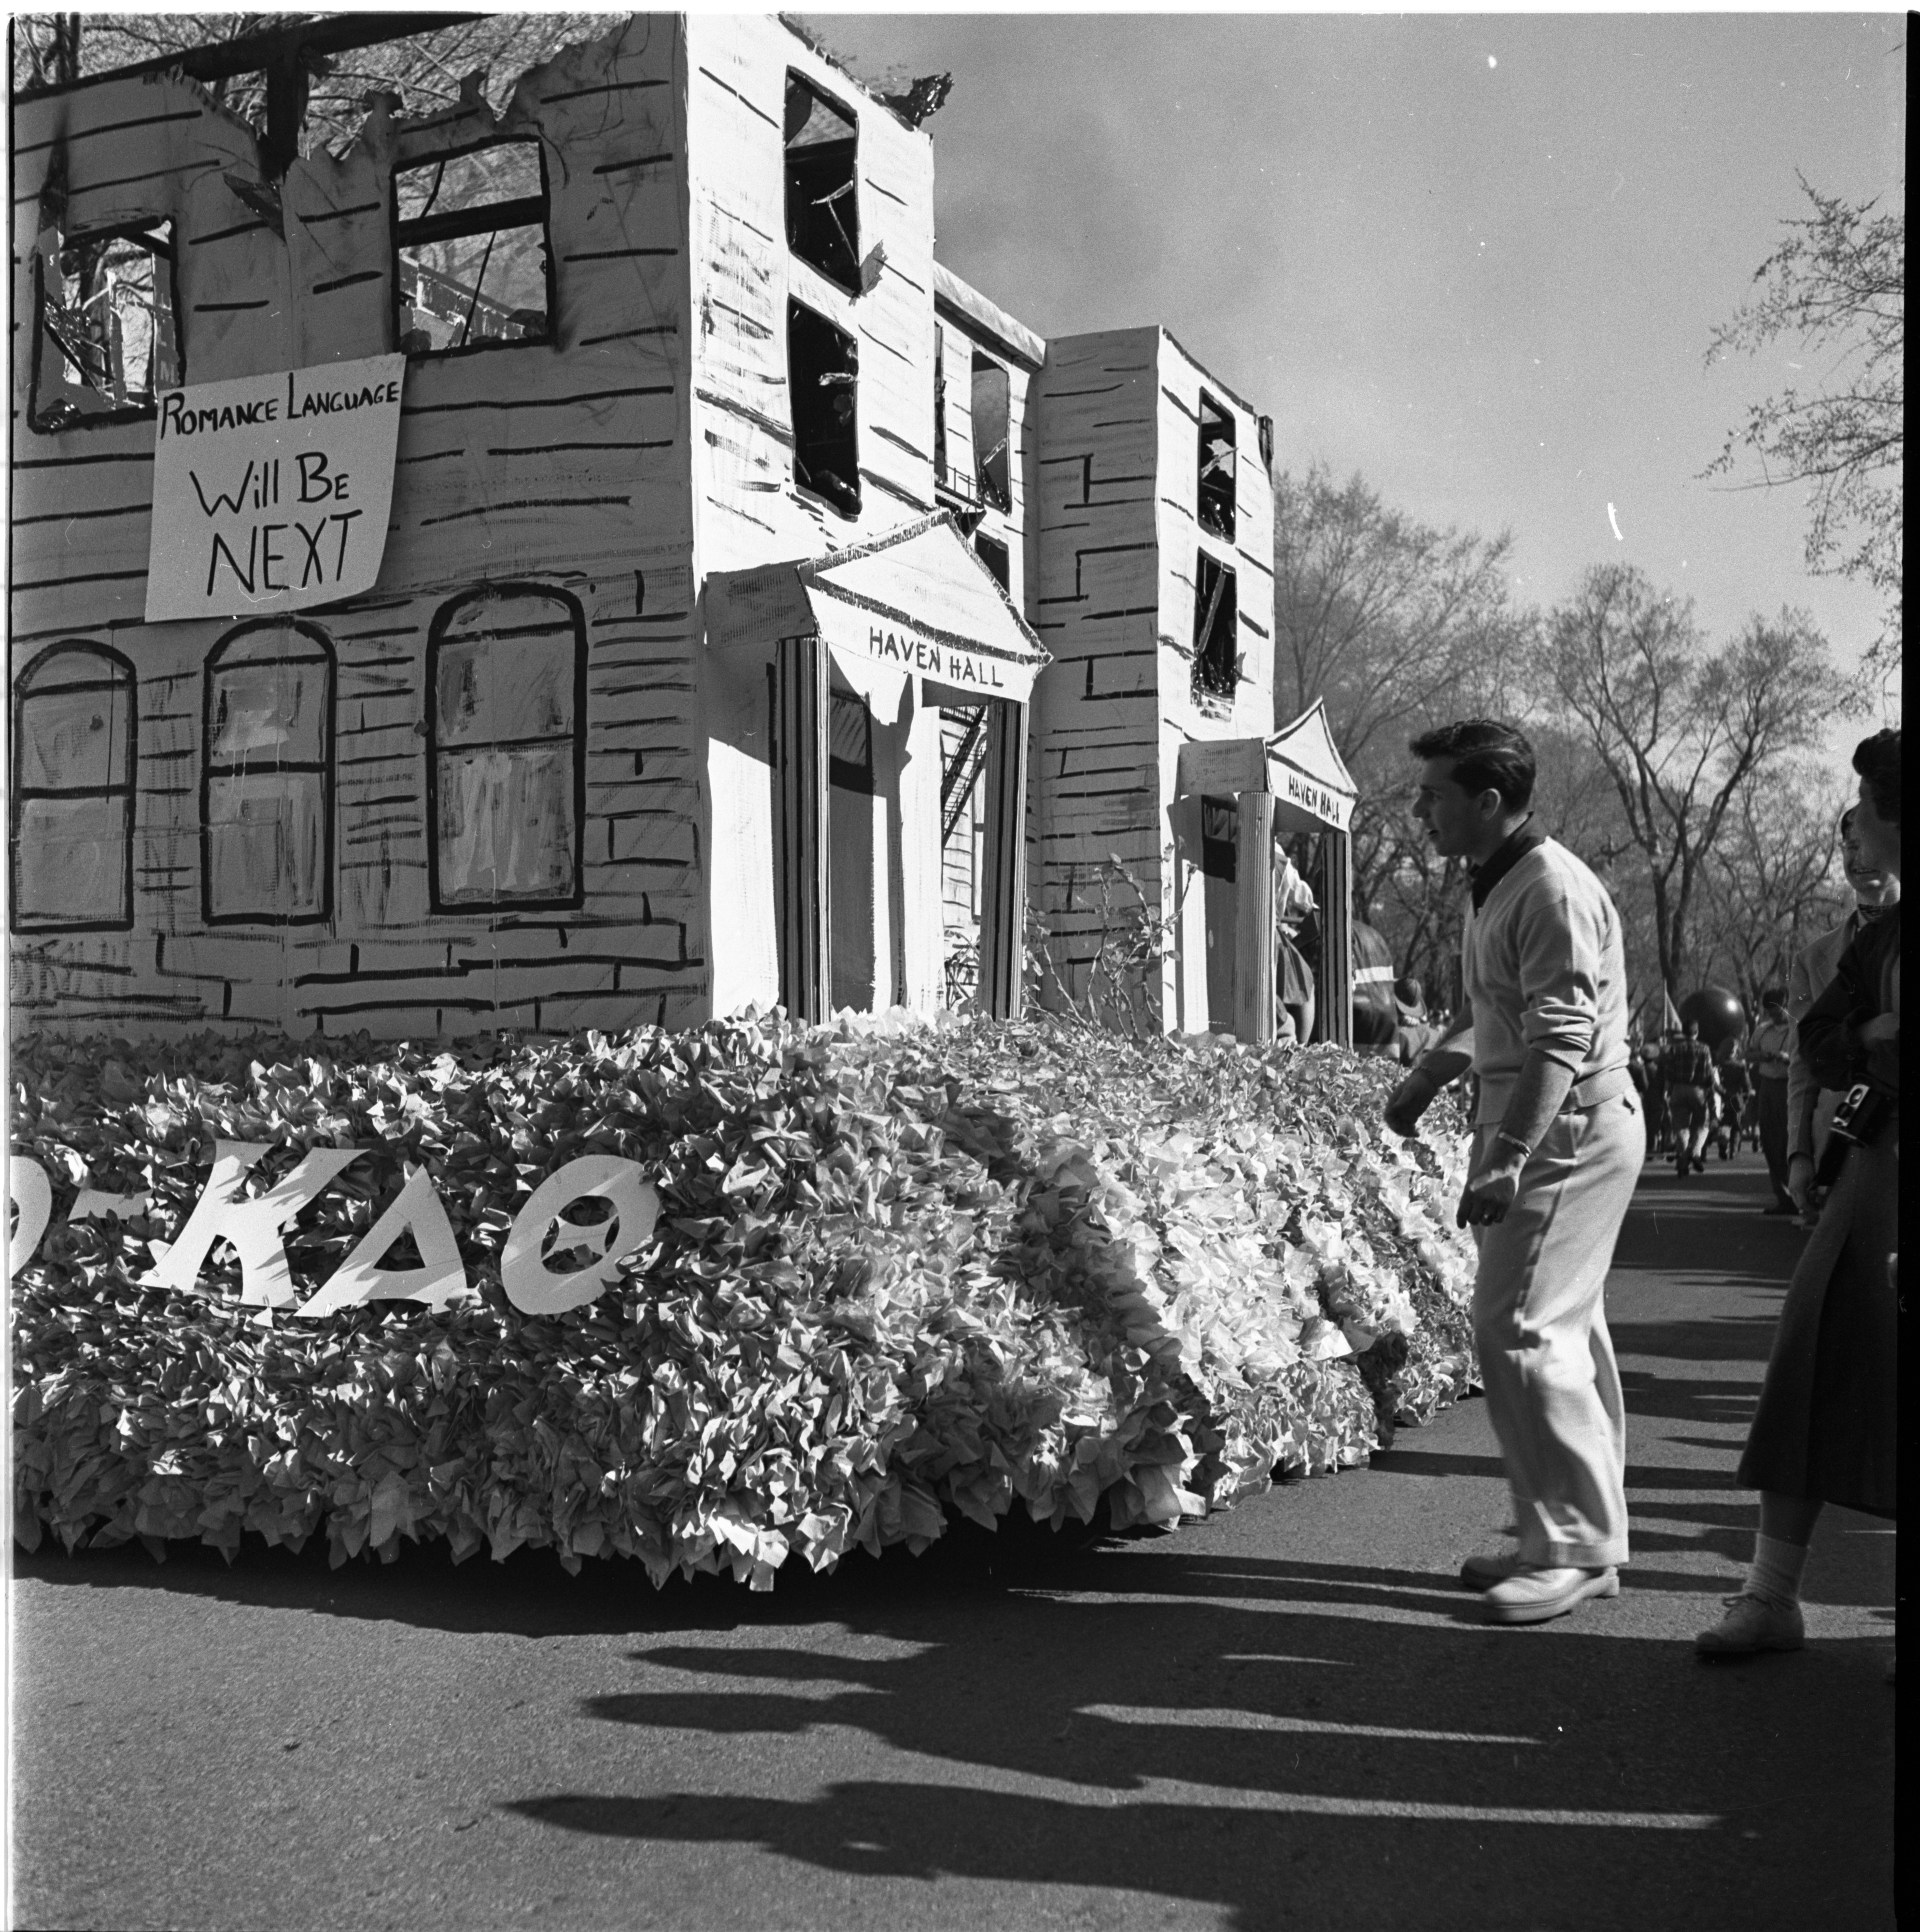 Michigras Parade Takes To Ann Arbor Streets, April 1952 image